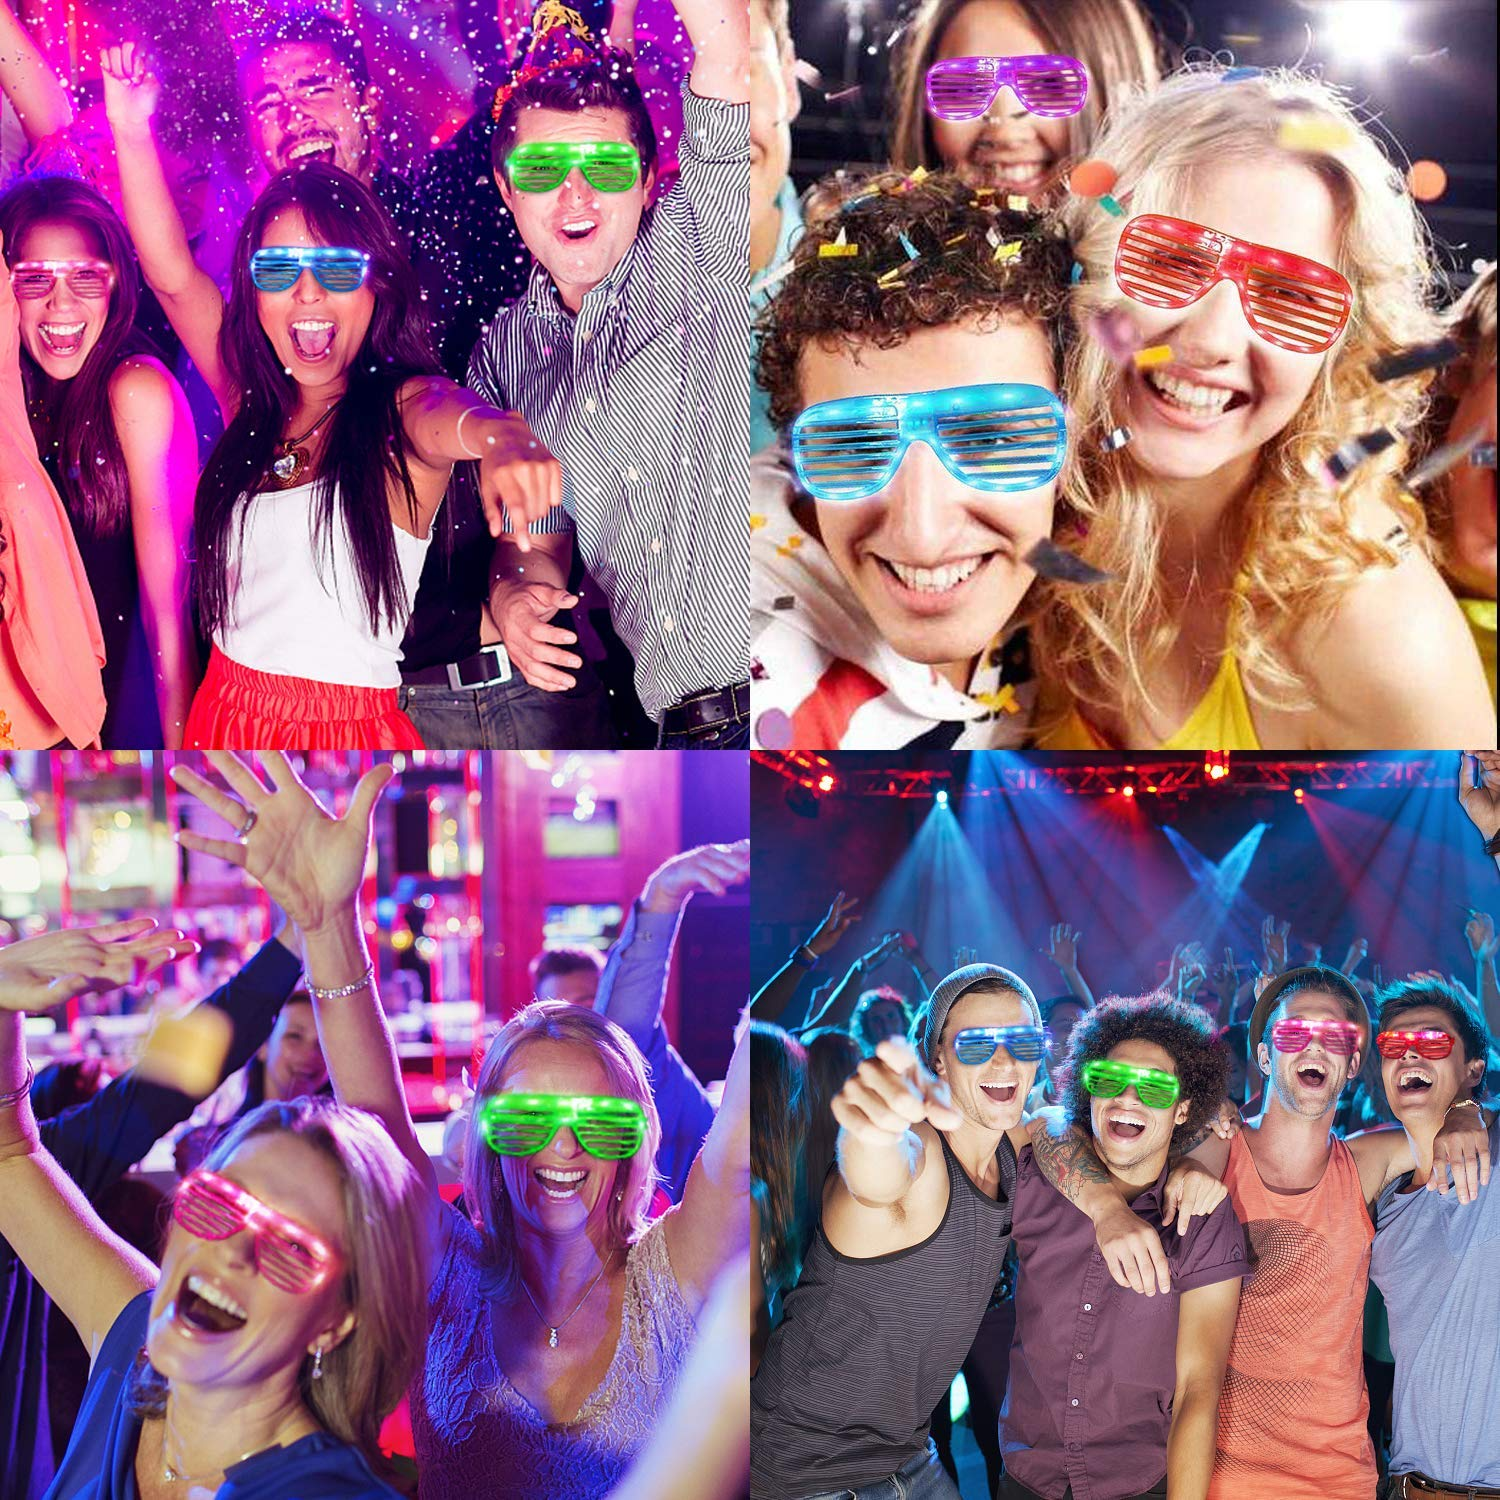 TURNMEON 20 Pack LED Glasses,5 Color Light Up Plastic Shutter Shades Glasses Shades Sunglasses for Adults Kids Glow in the Dark Party Favors Neon Party Supplies Independence Day Glow Toy by TURNMEON (Image #4)